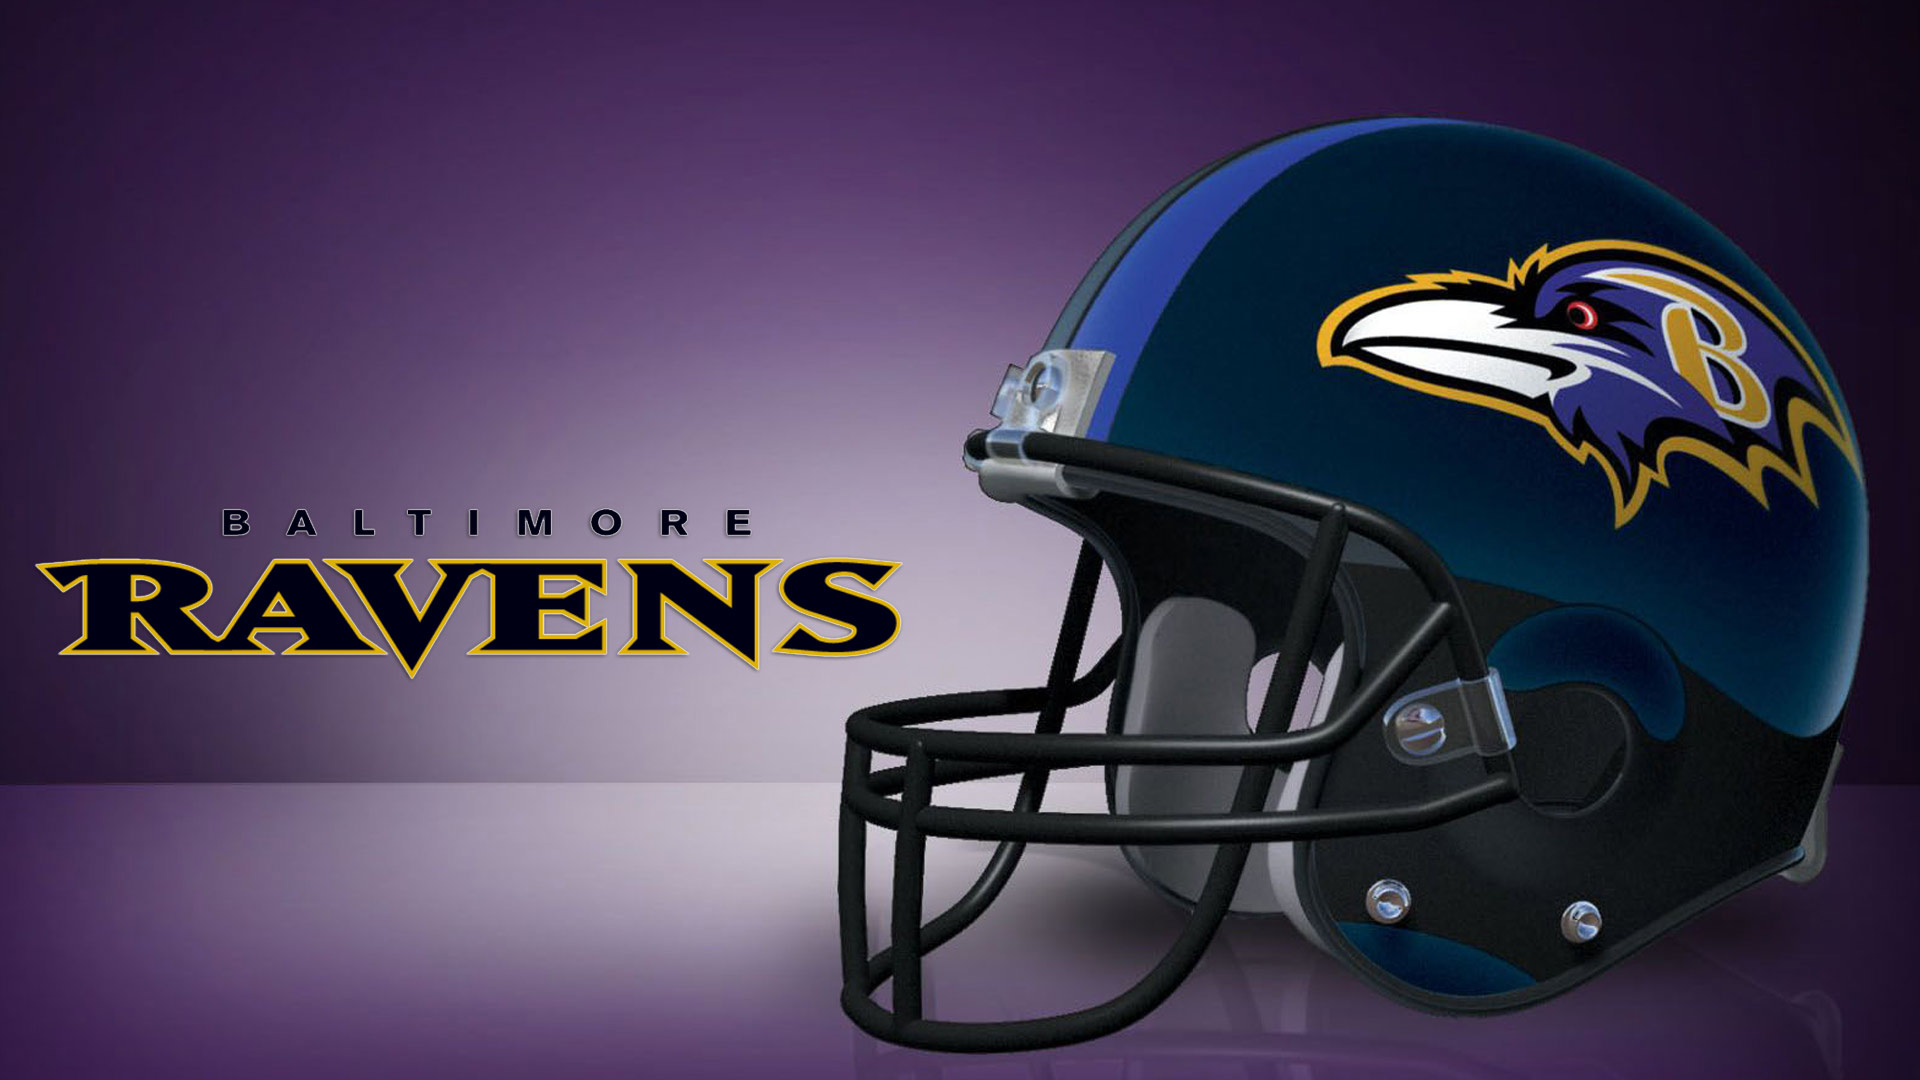 Baltimore ravens wallpaper full hd wallpapers for 1080p 1920x1080